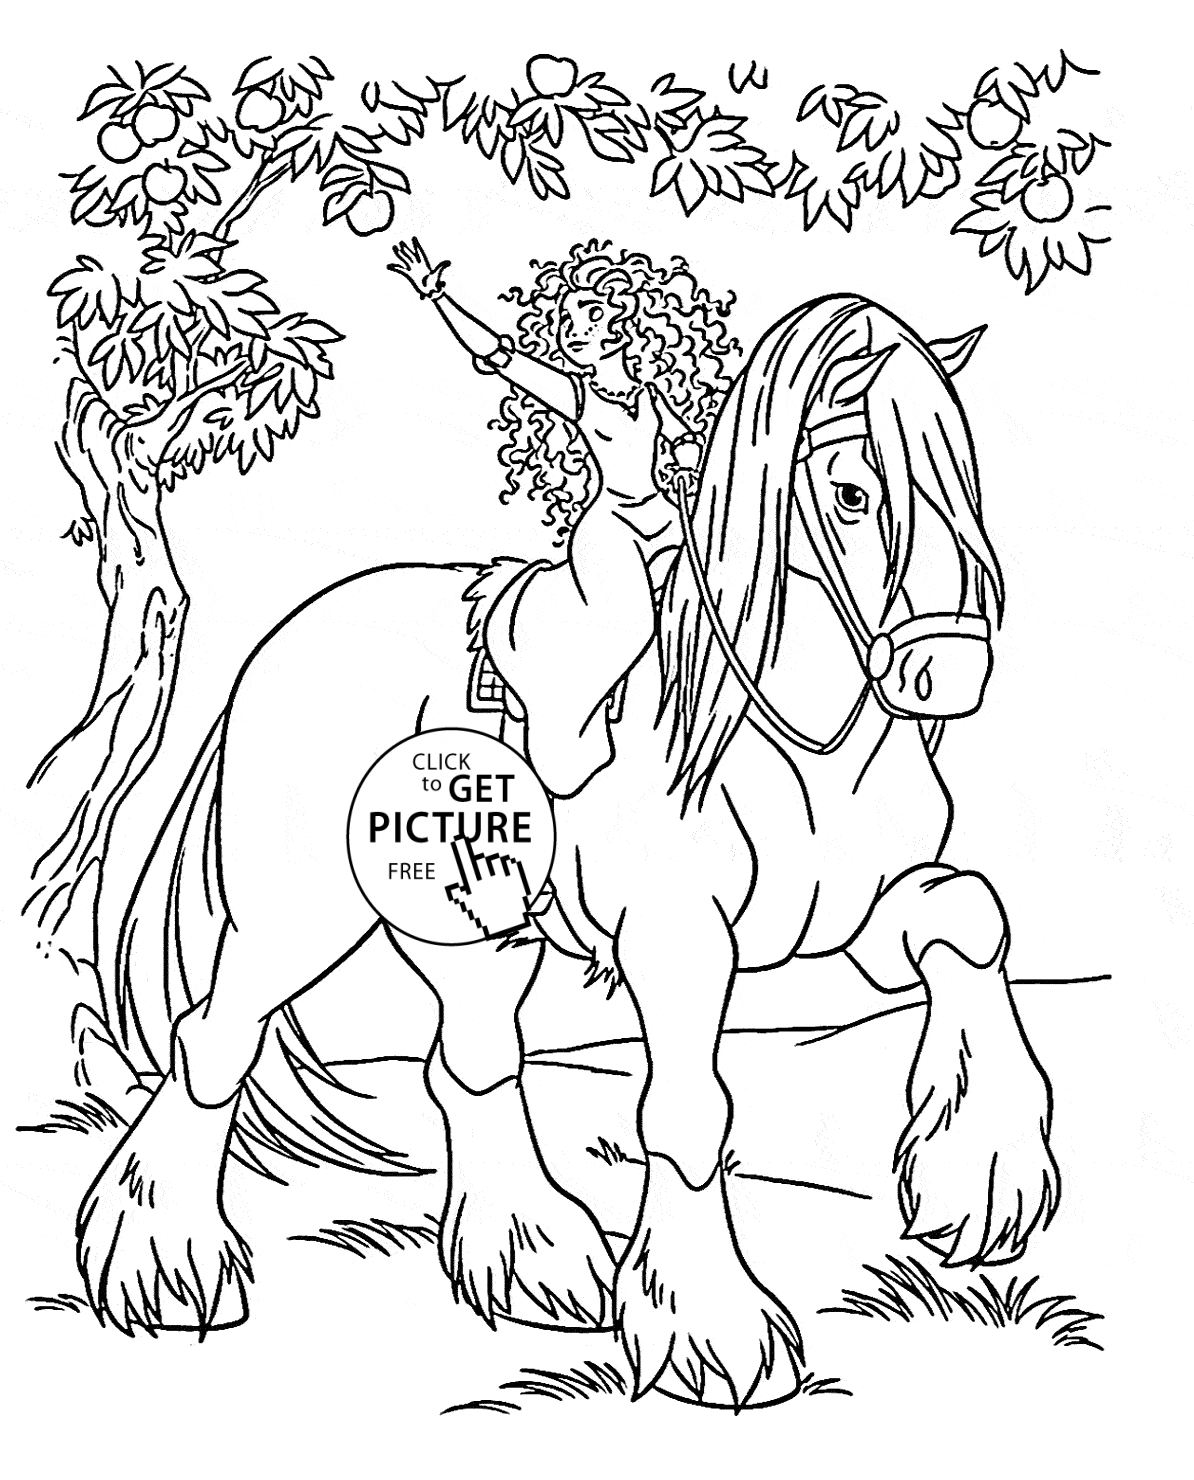 disney princess coloring pages free to print - disney princess merida rides a horse coloring page for kids disney princess coloring pages printables free